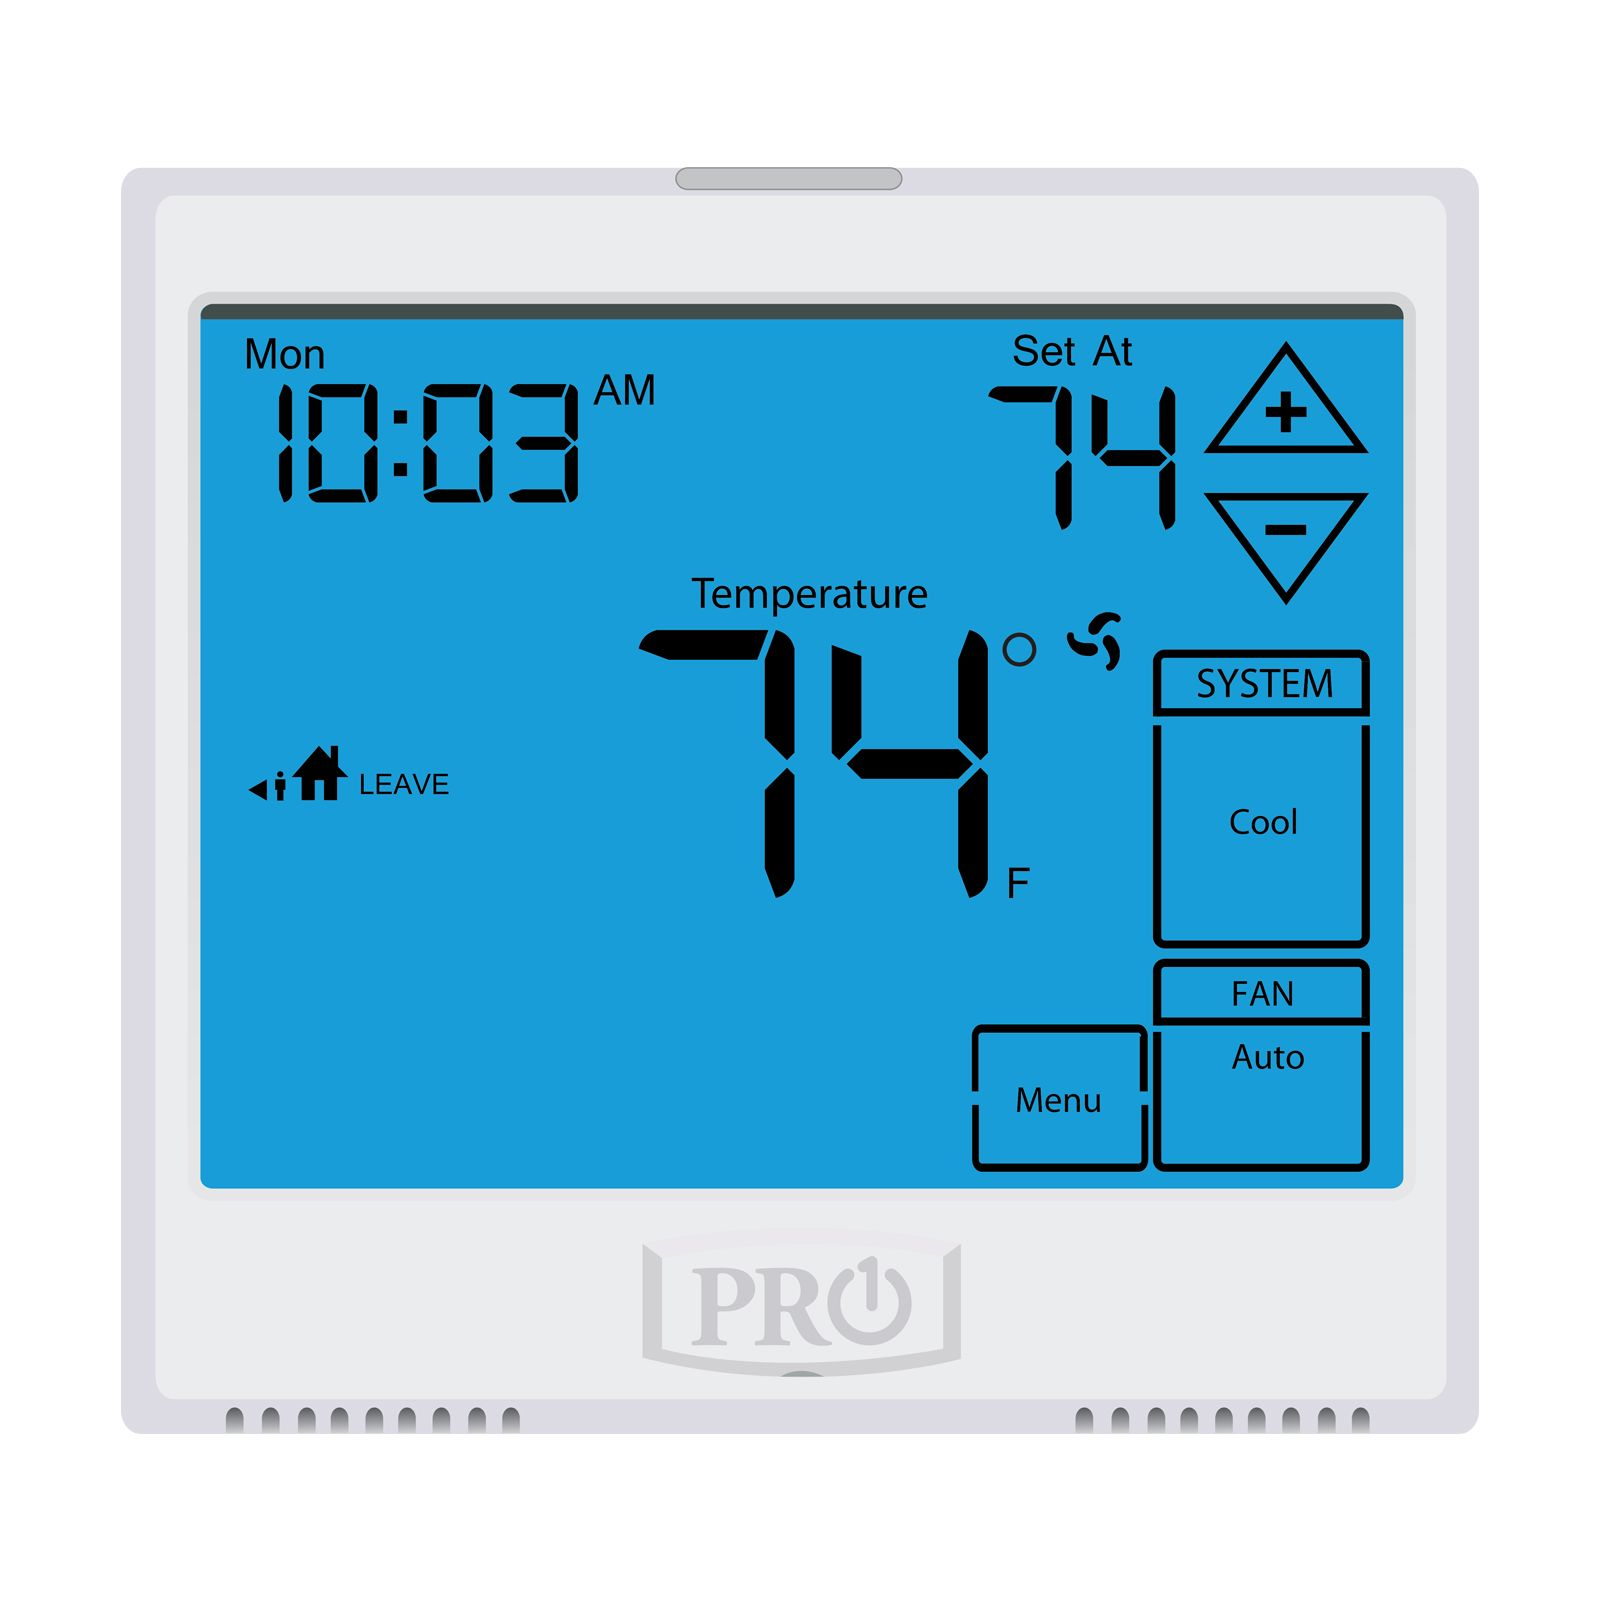 Pro1 T955 - Touchscreen, 5+1+1 Or 7 Day Or Non-Programmable Thermostat, 3H/2C With 13 Square Inch Display